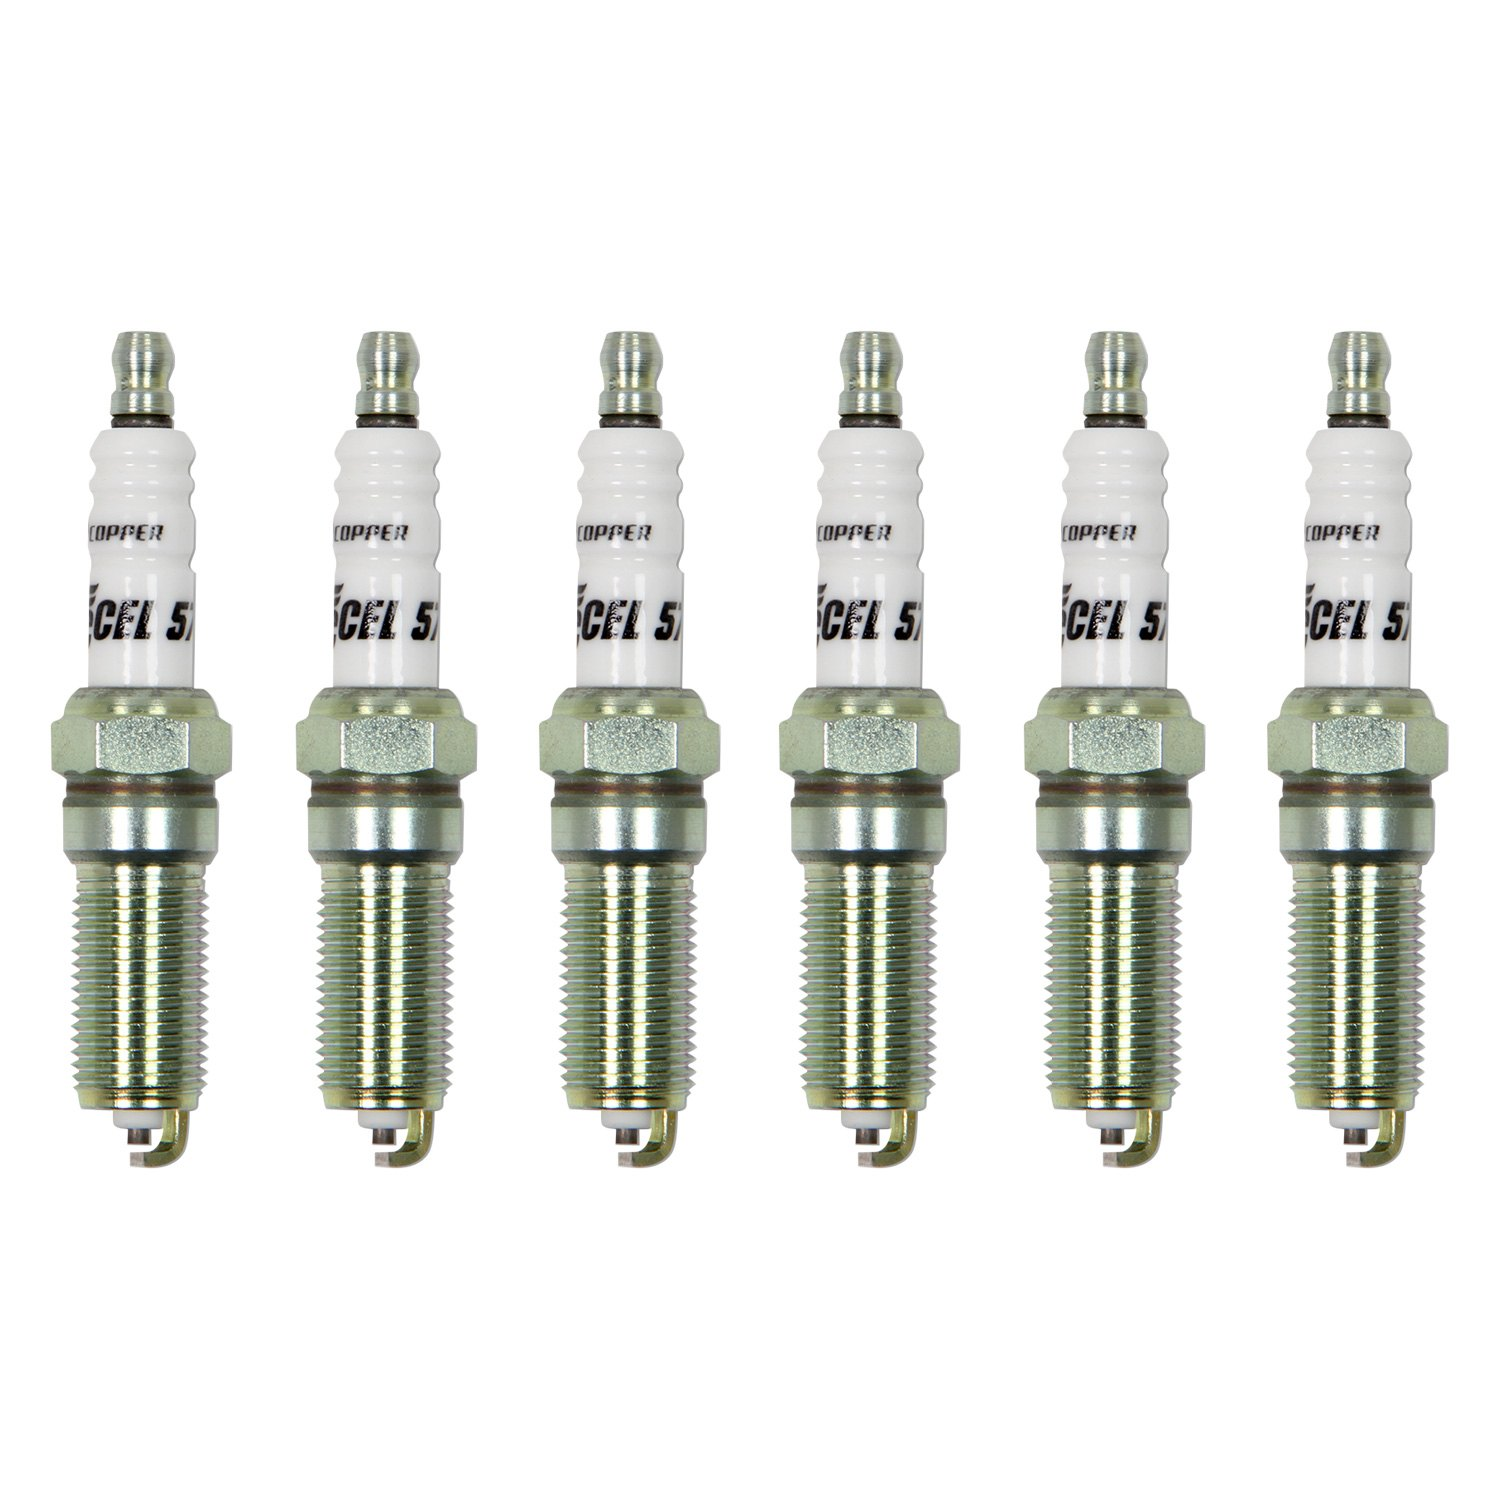 buy cheap Accel® 578C1-6 - HP Copper Spark Plugs for 2015 RAM 1500 TRUCK Ebay & Amazon